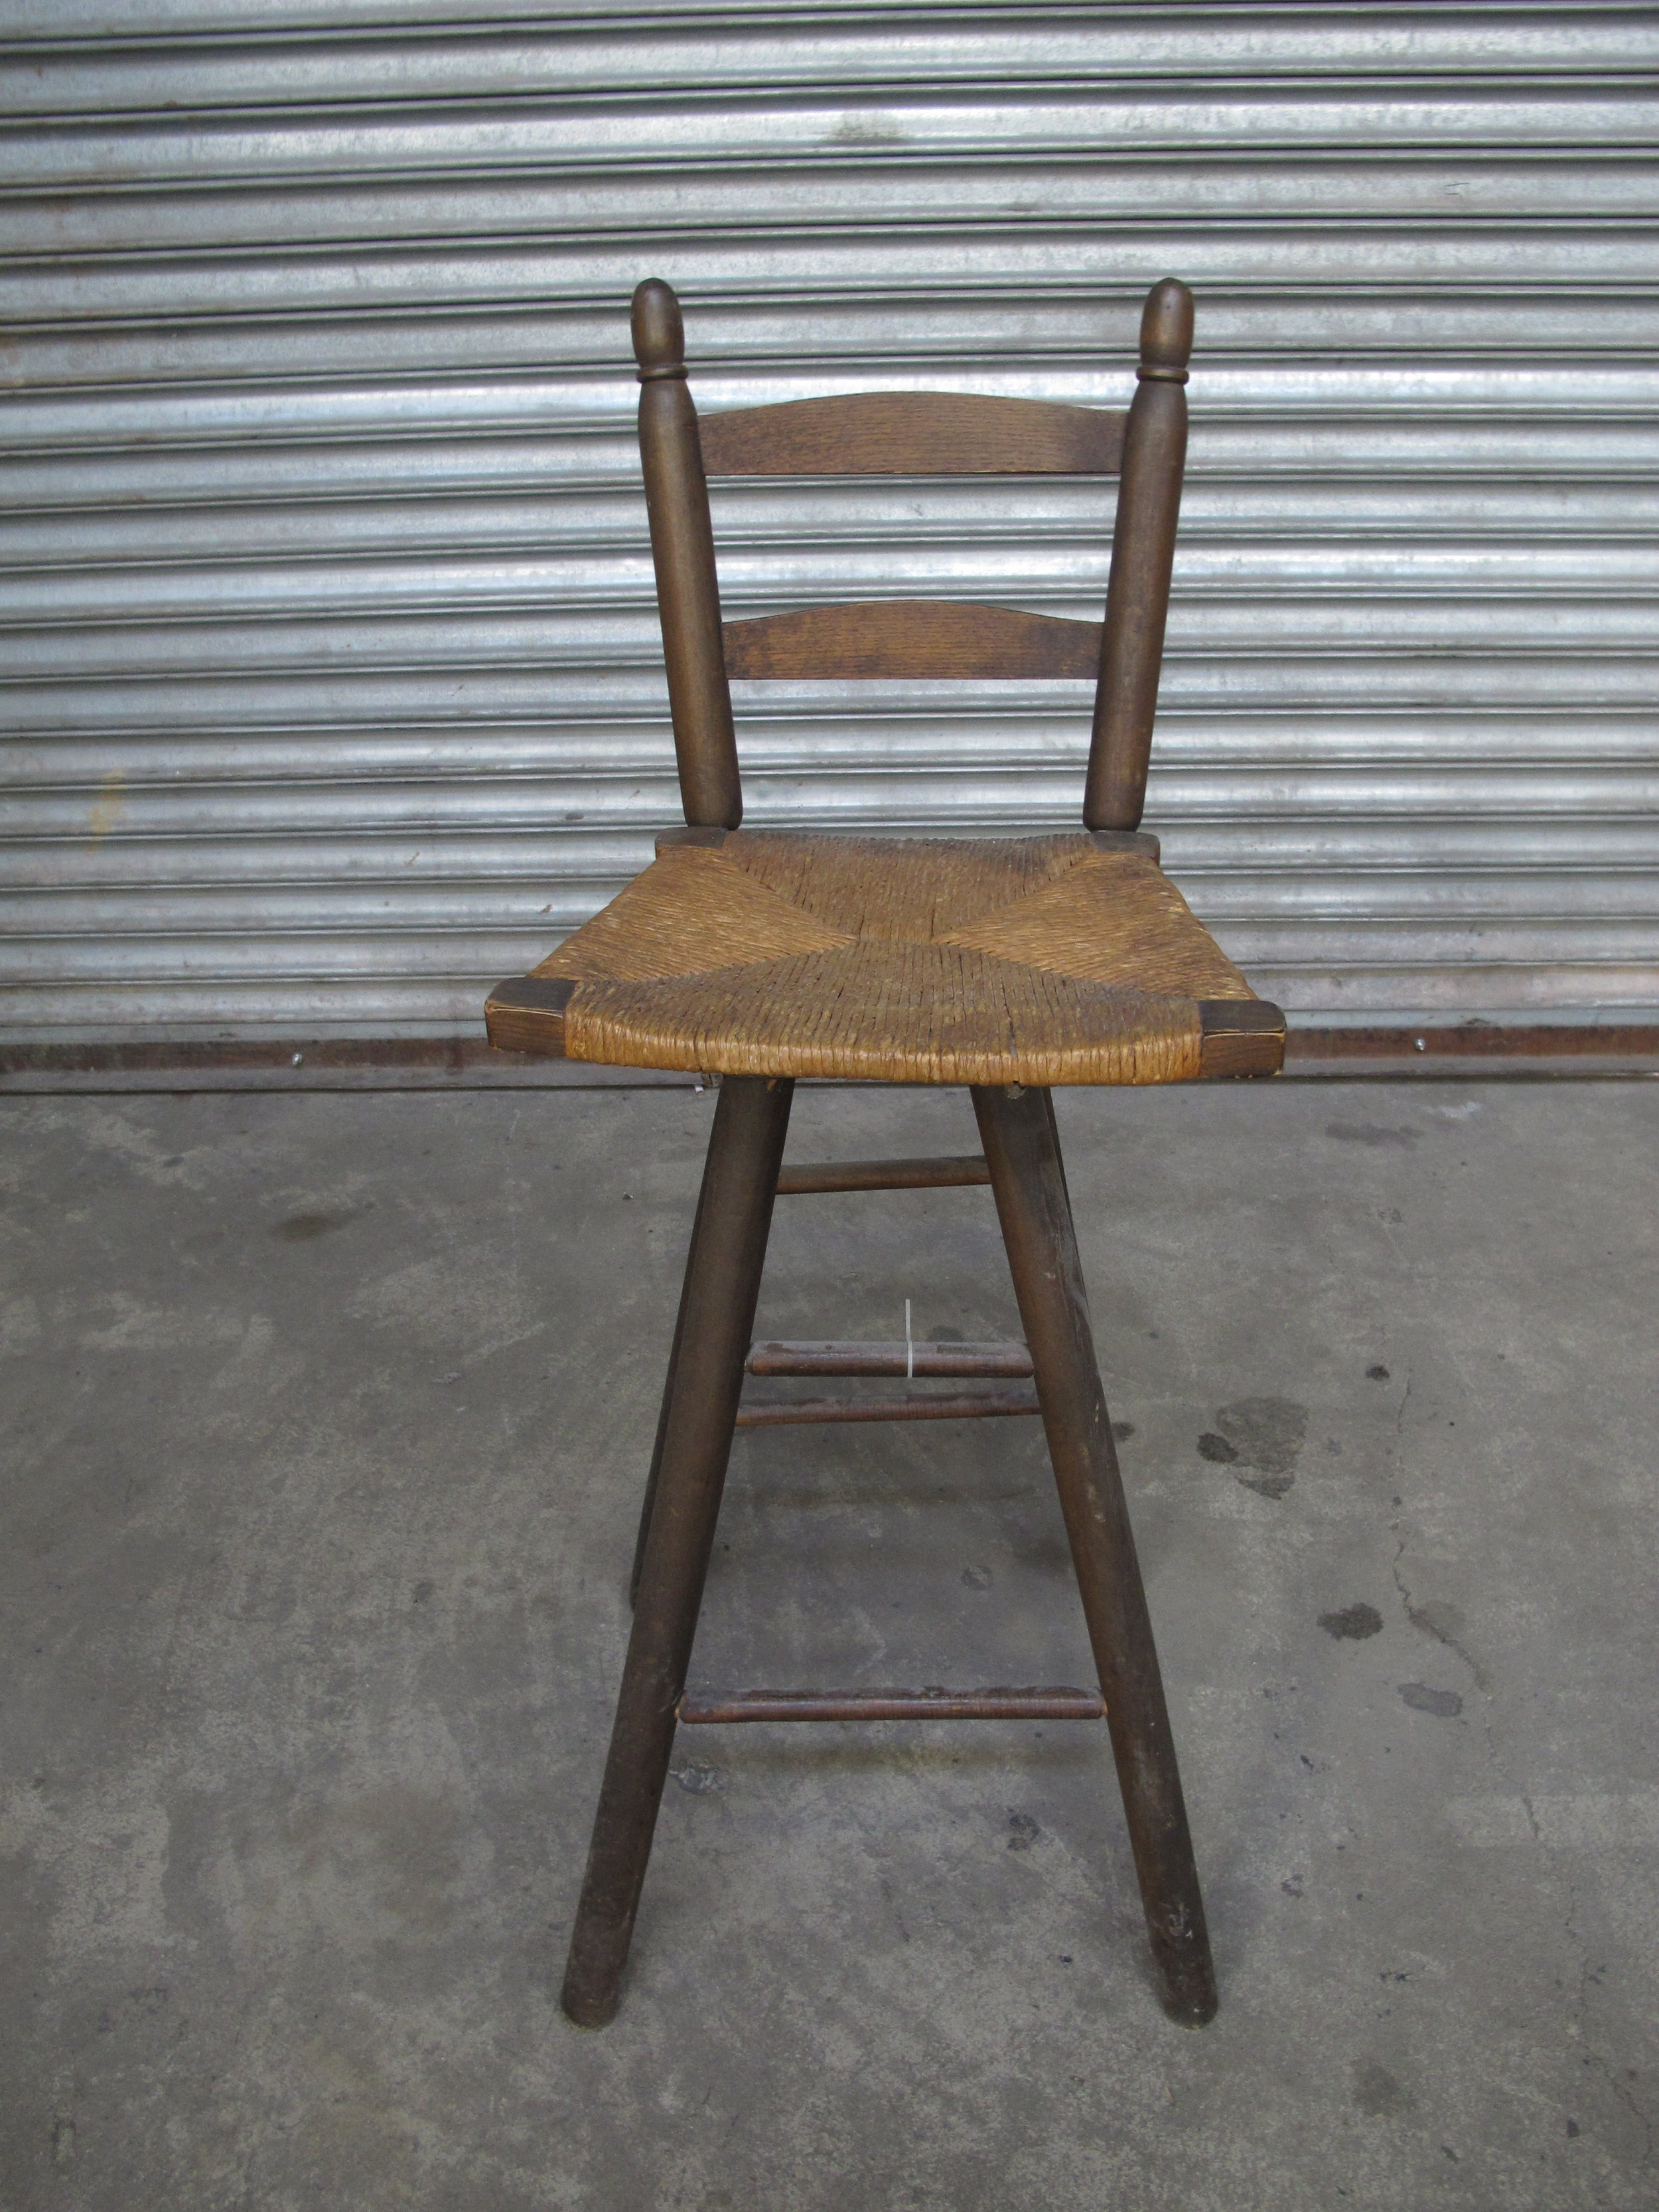 Wood Antique Woven seat High Chair $25